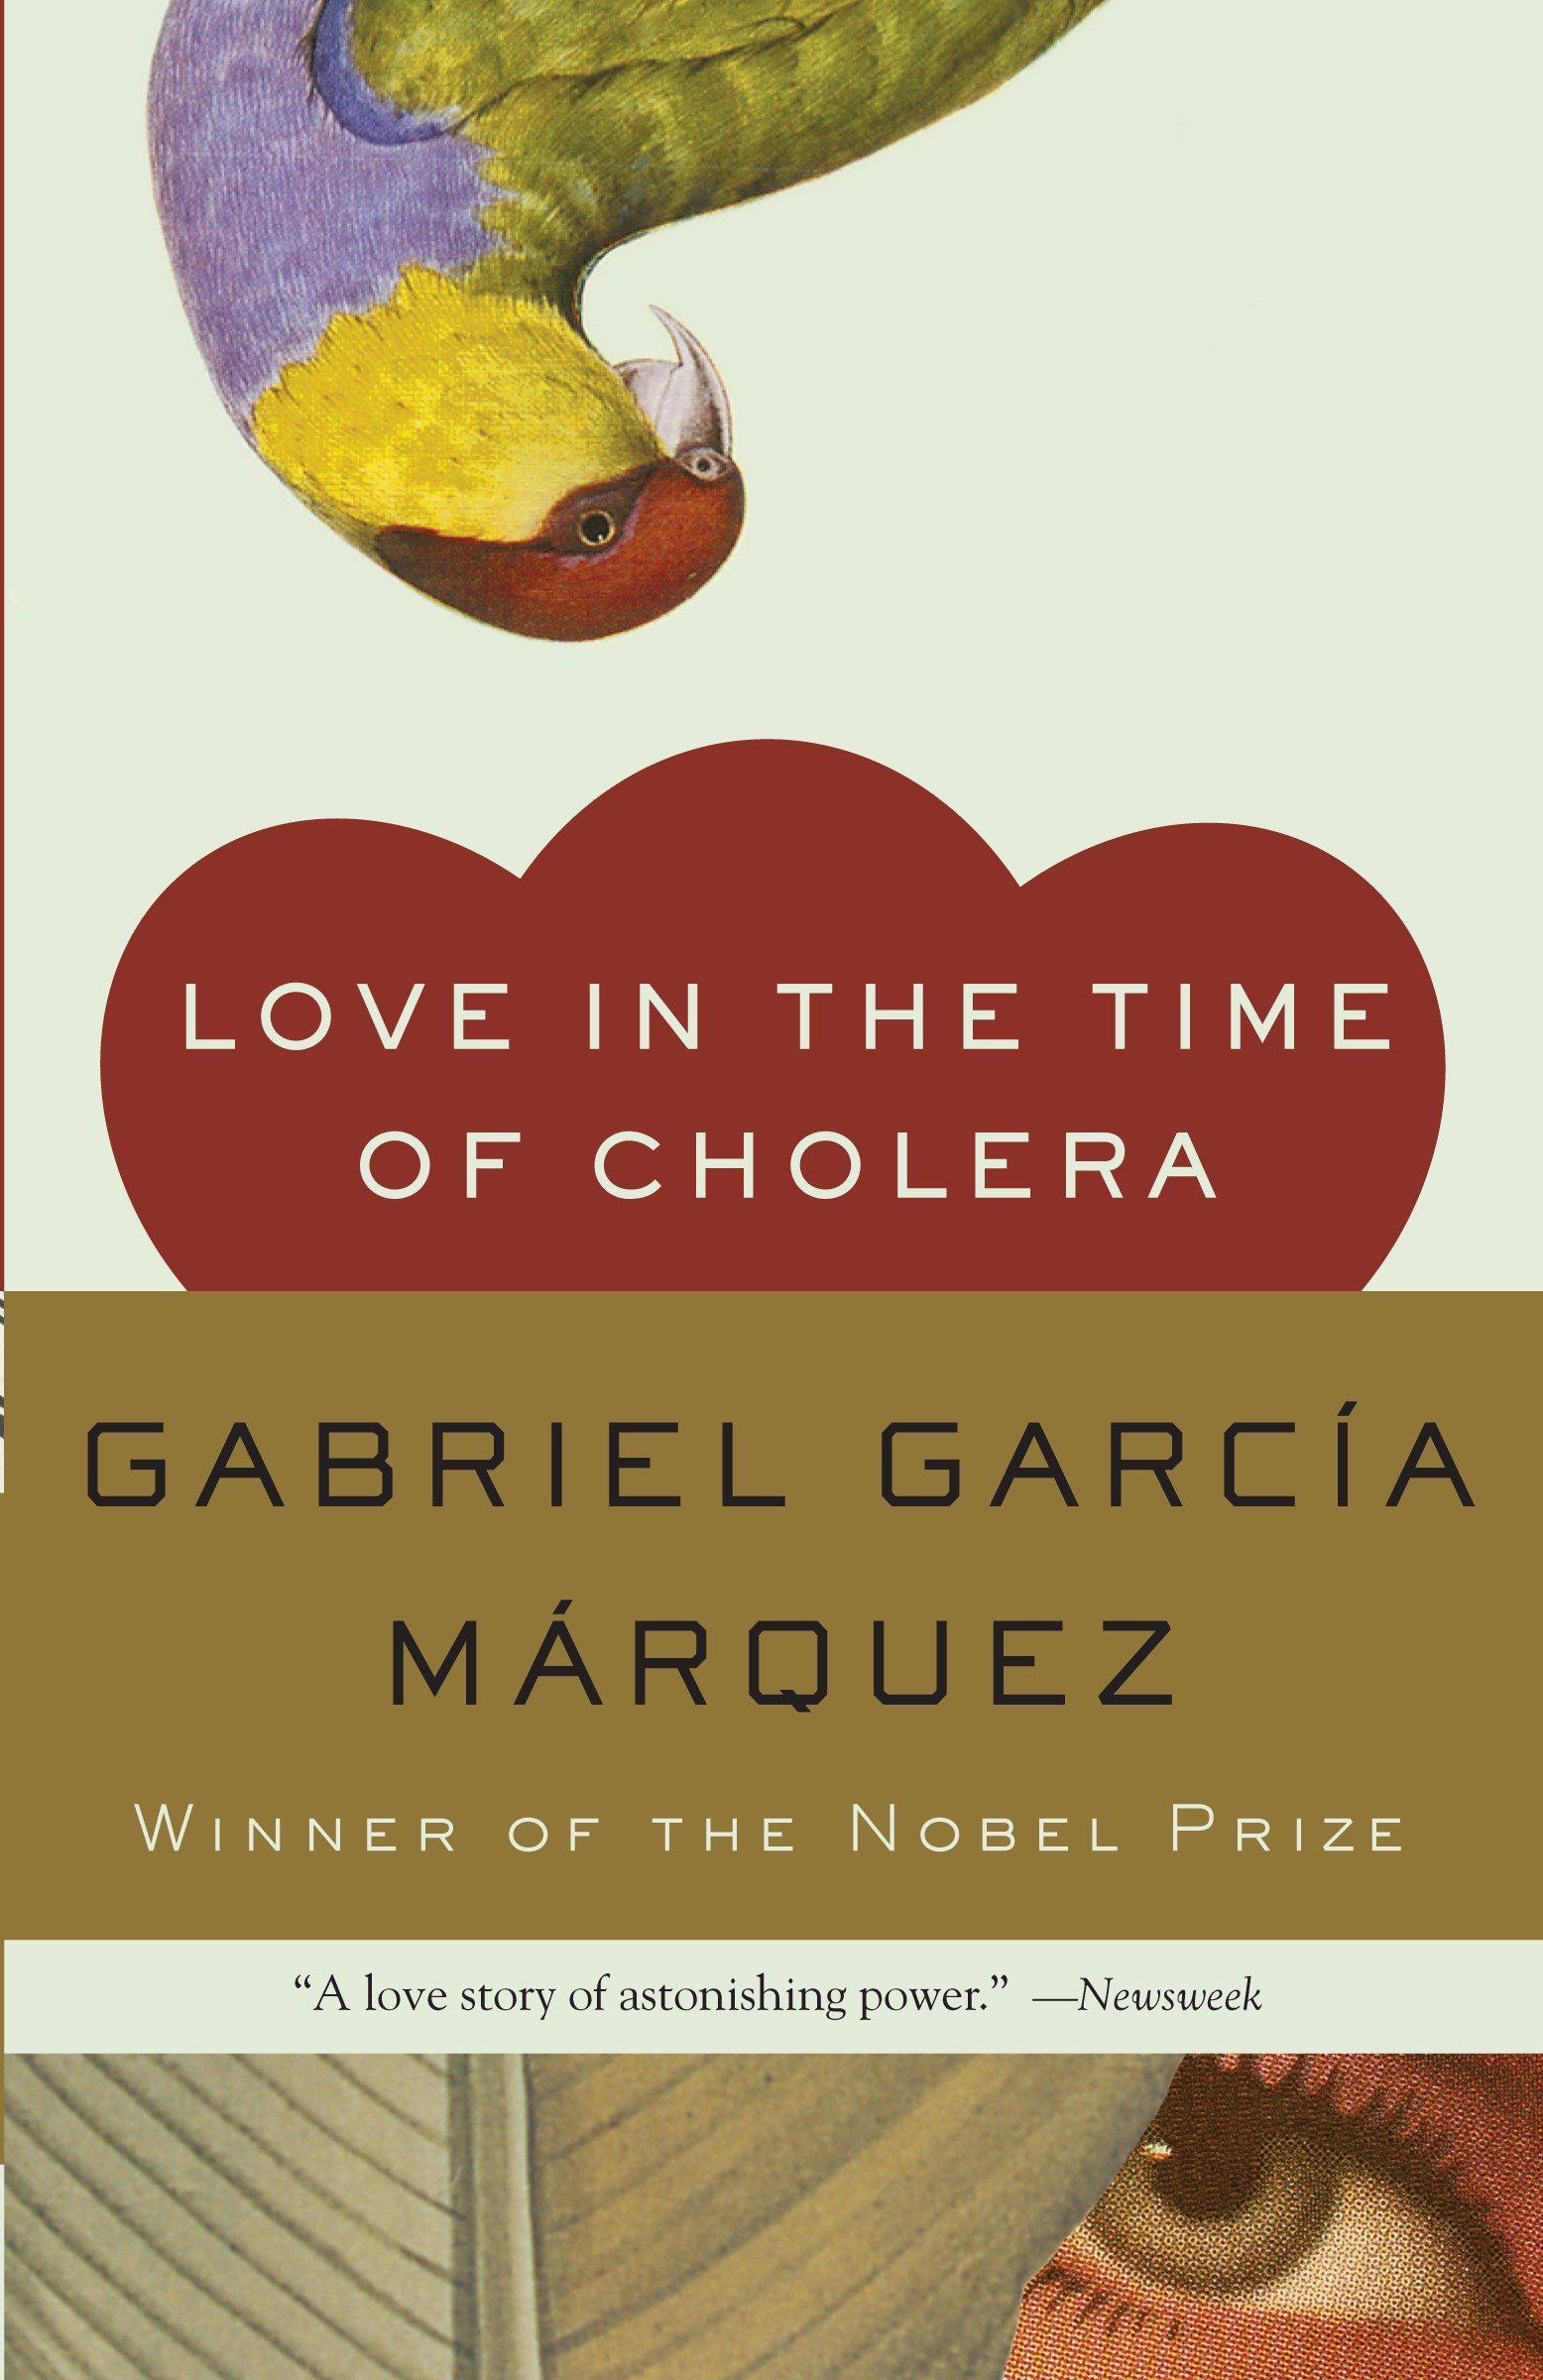 Love in the Time of Cholera book cover image